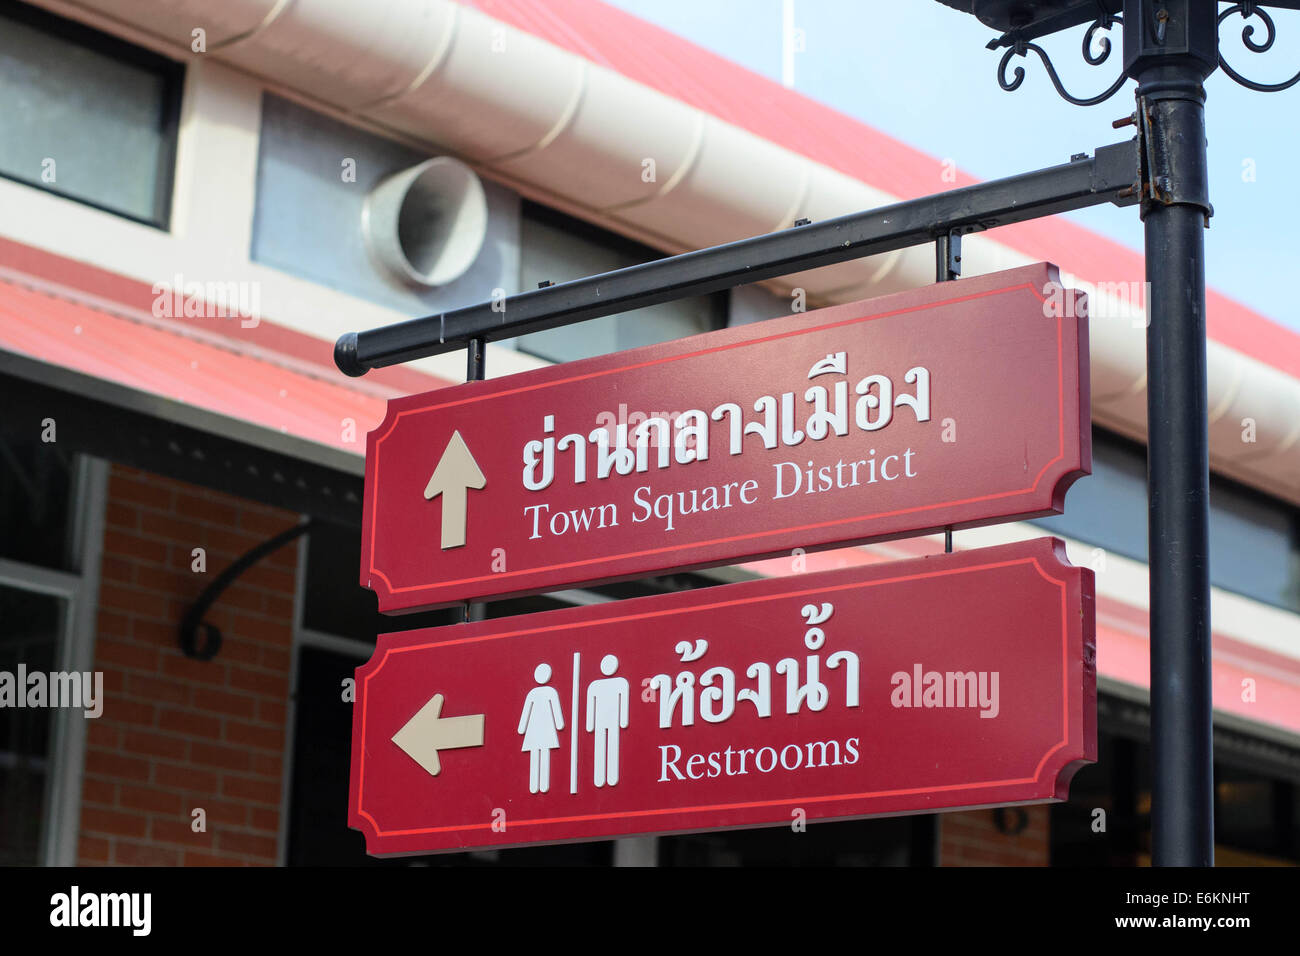 Signs in  ASIATIQUE Reiverfront - Stock Image